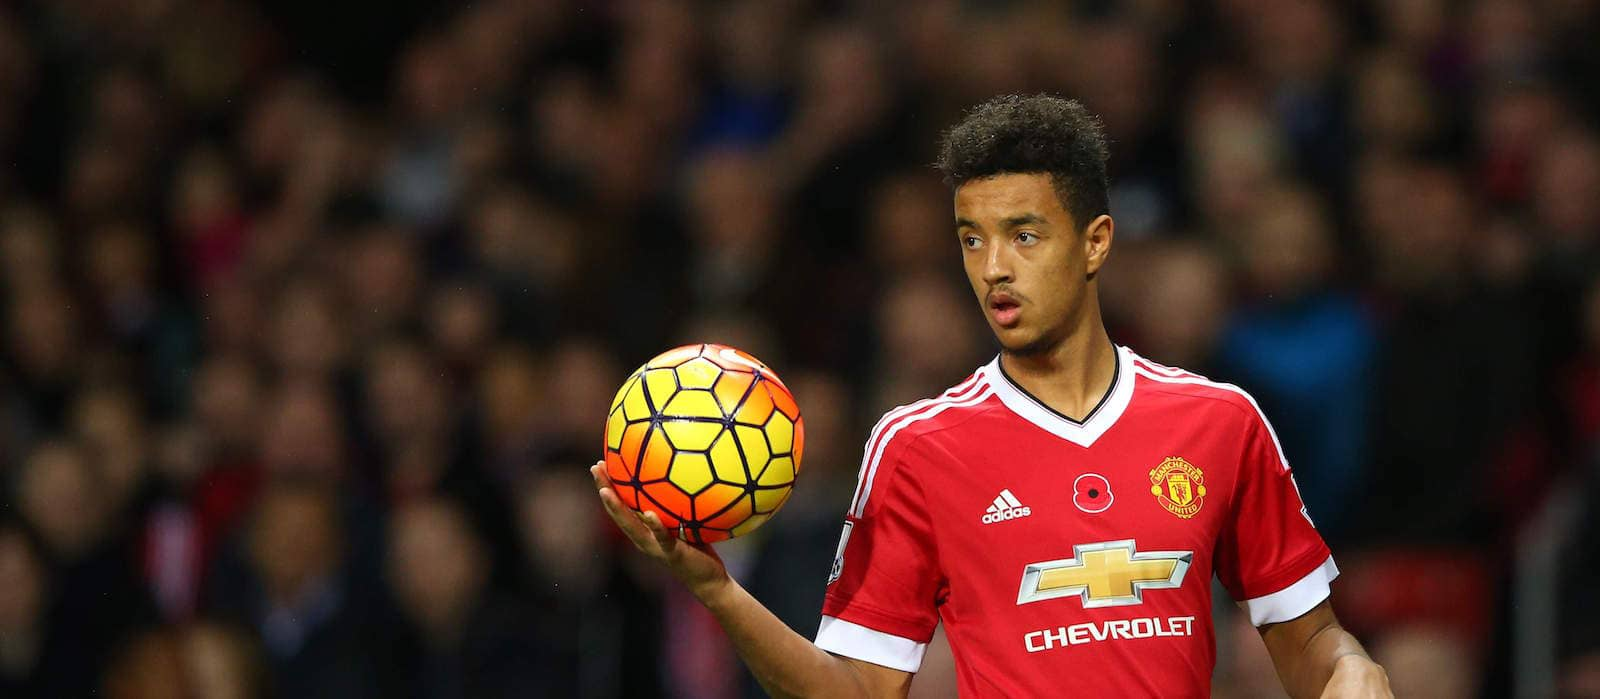 Man United's Cameron Borthwick-Jackson joins Wolves on loan